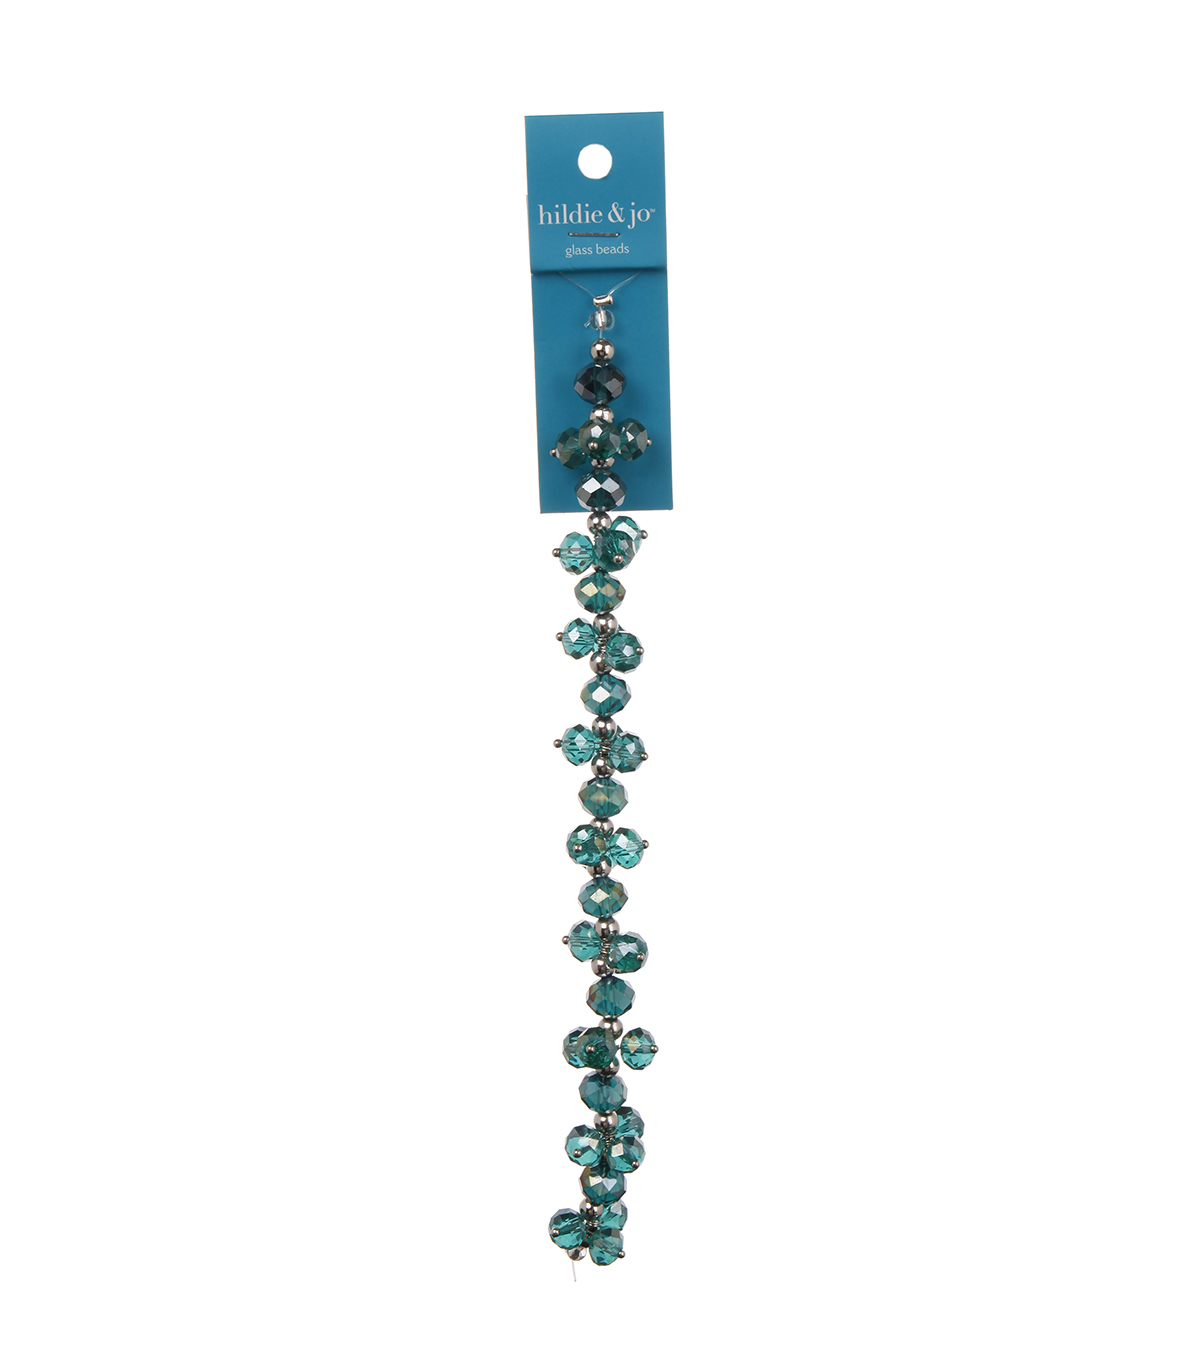 Blue Moon Beads 7\u0022 Crystal Strand, Dangles, Teal